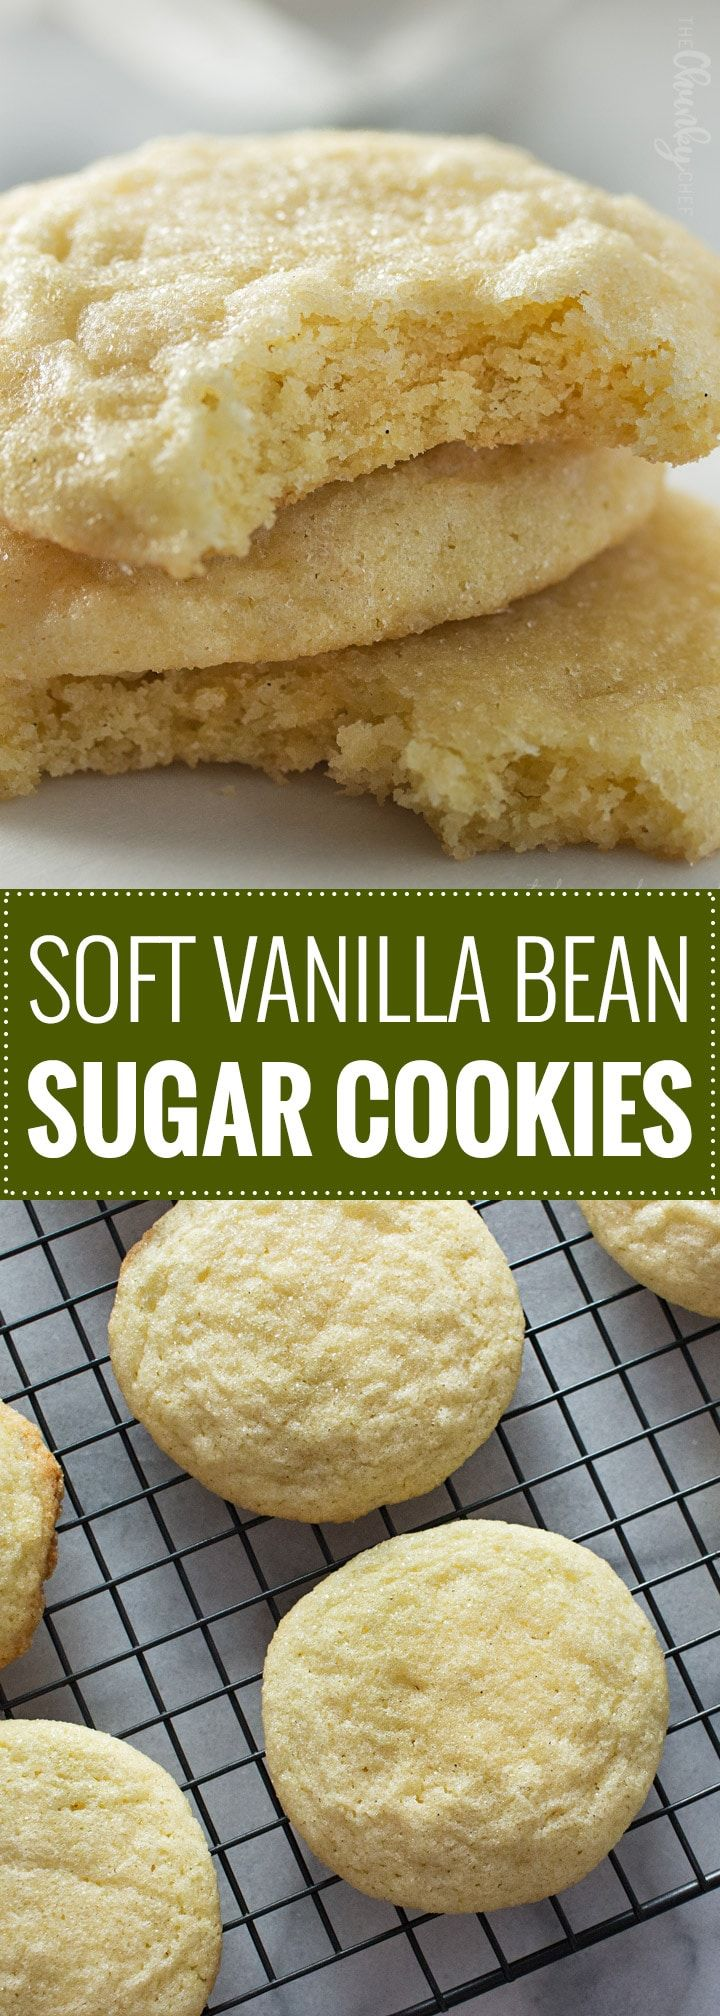 Soft Vanilla Bean Sugar Cookies | If you like soft and chewy sugar cookies, then this is THE recipe for you!  Rolled in granulated sugar, these thick cookies have a buttery richness and plenty of vanilla flavor. | The Chunky Chef | #sugarcookies #sugarcookierecipe #holidaybaking #softandchewy #Christmascookies